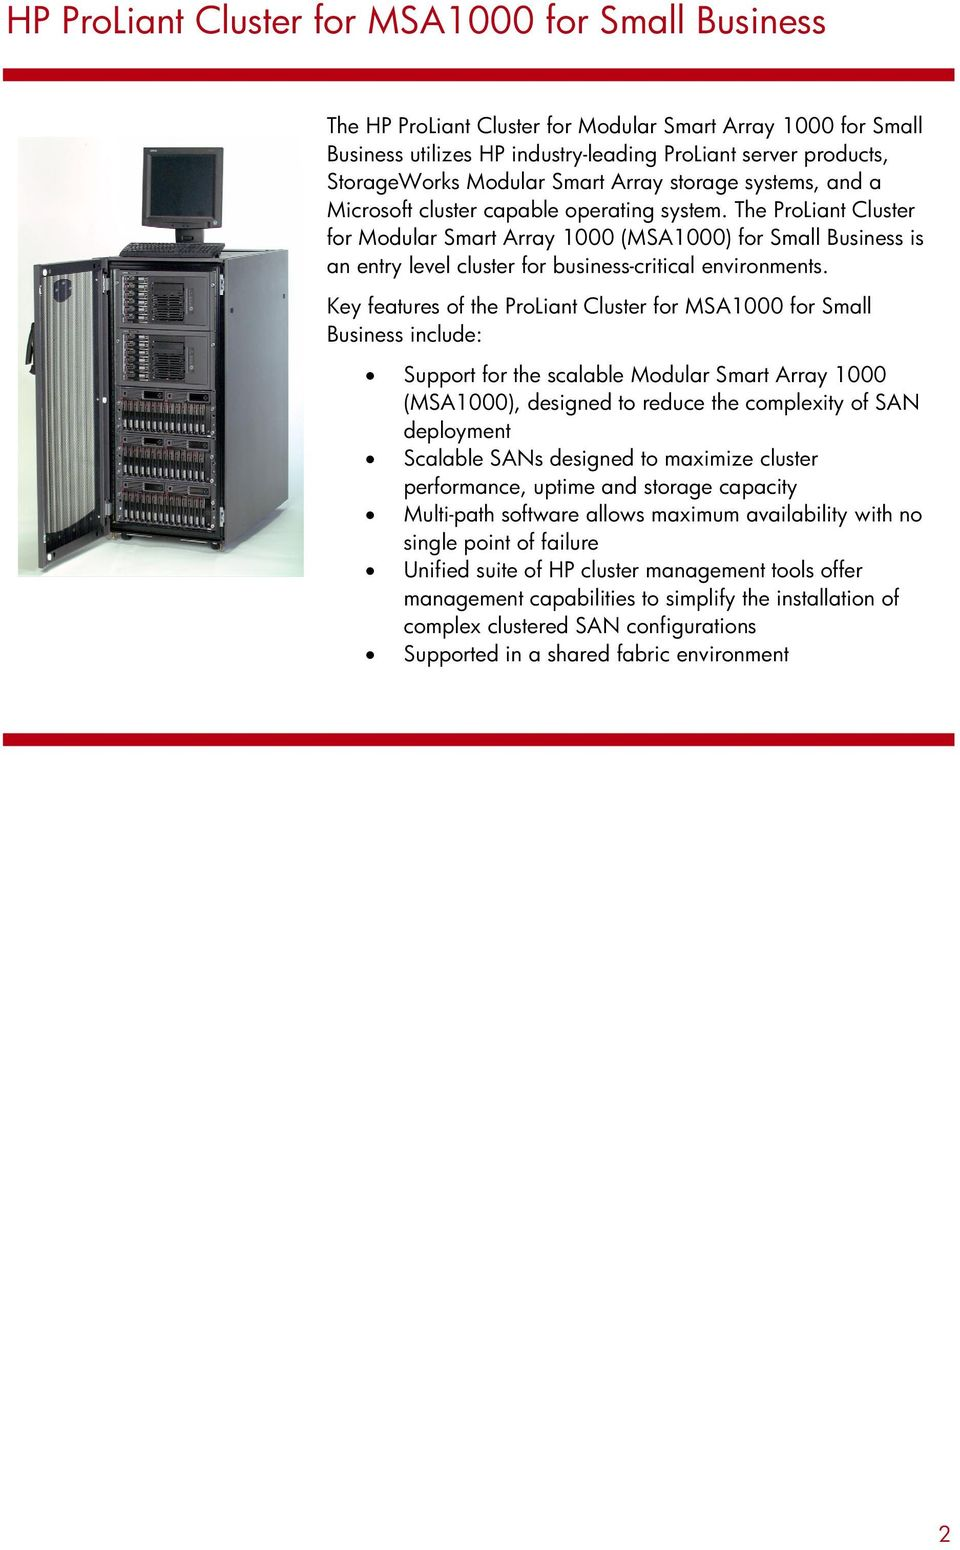 The ProLiant Cluster for Modular Smart Array 1000 (MSA1000) for Small Business is an entry level cluster for business-critical environments.